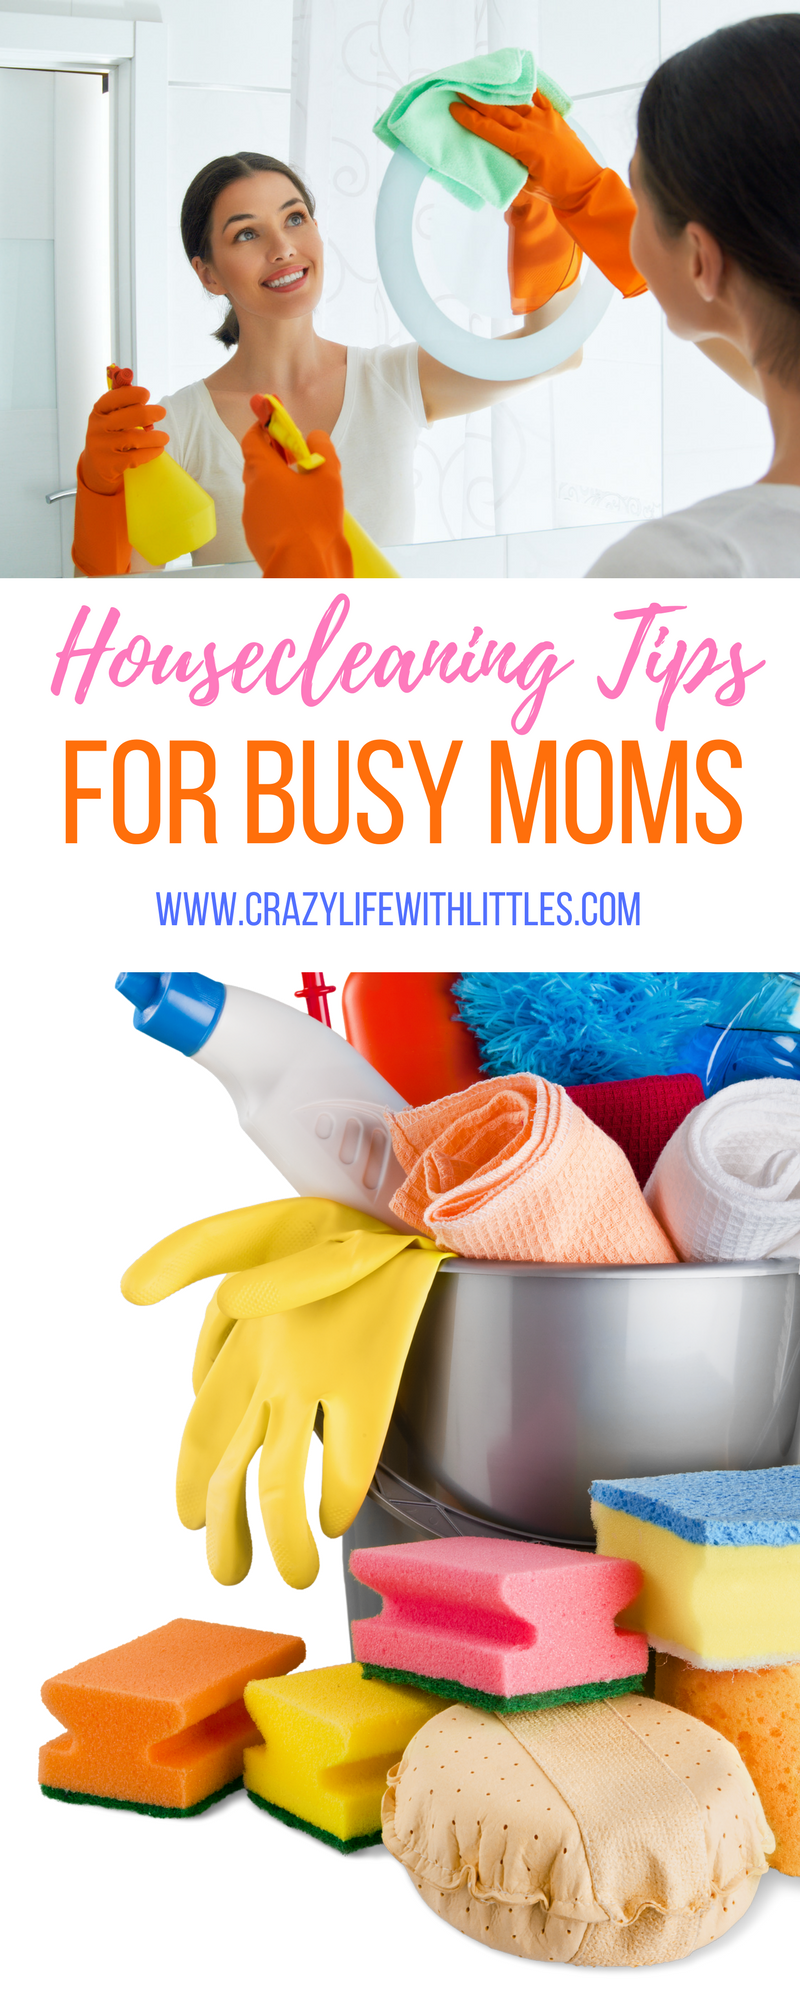 working mom cleaning routine, housework tips for working mothers, quick cleaning tips for busy moms, cleaning hacks for busy moms,printable cleaning schedule for working moms, how to keep a clean house while working full time, stay at home mom cleaning tips, cleaning tips for working moms